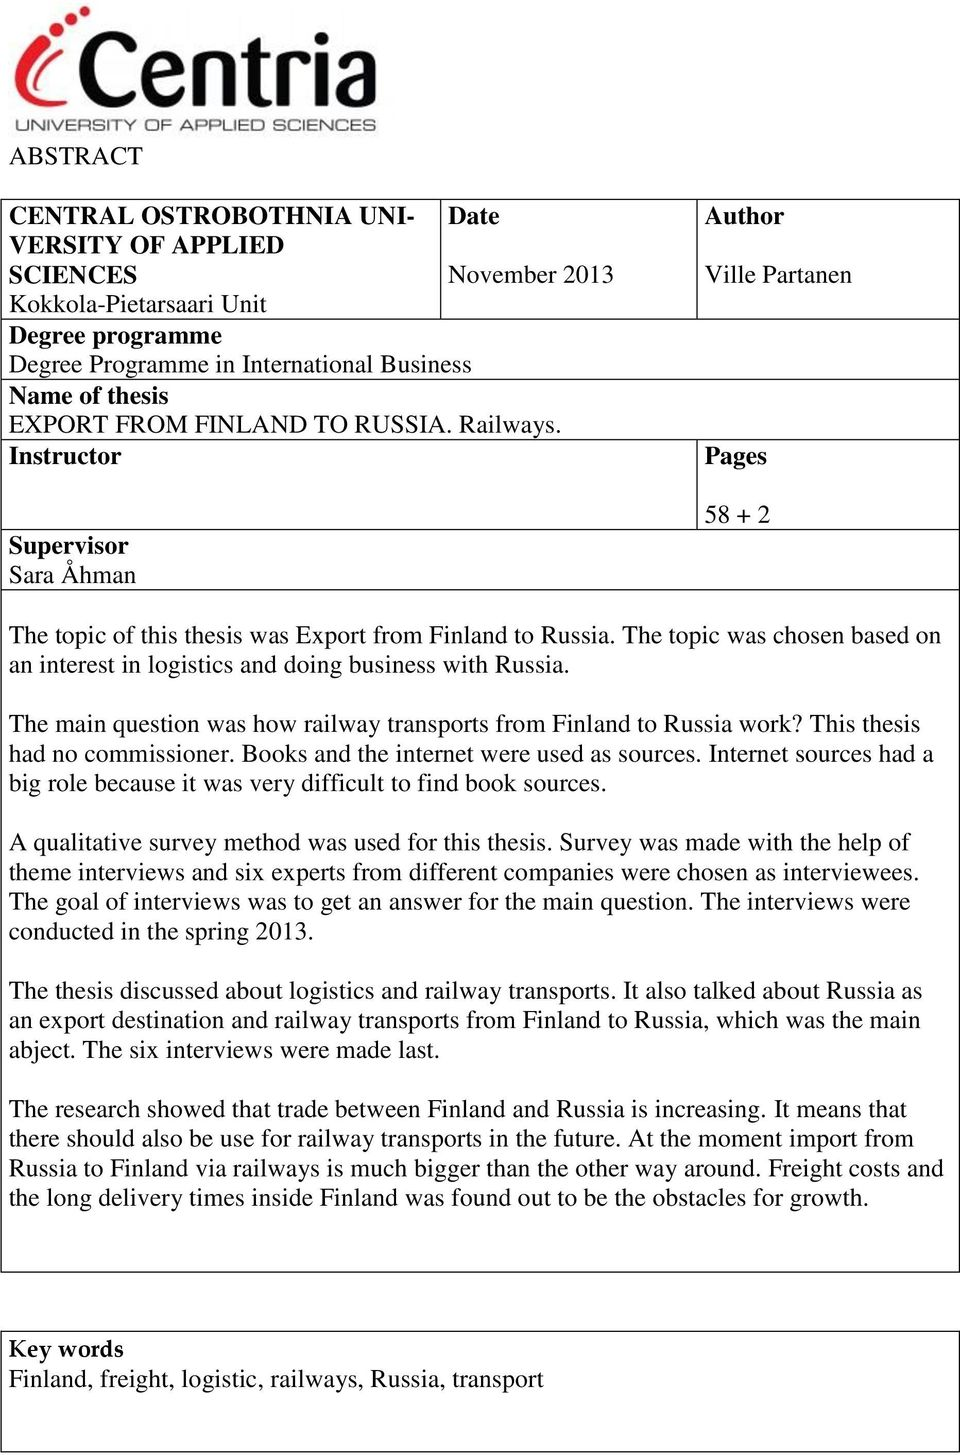 The topic was chosen based on an interest in logistics and doing business with Russia. The main question was how railway transports from Finland to Russia work? This thesis had no commissioner.